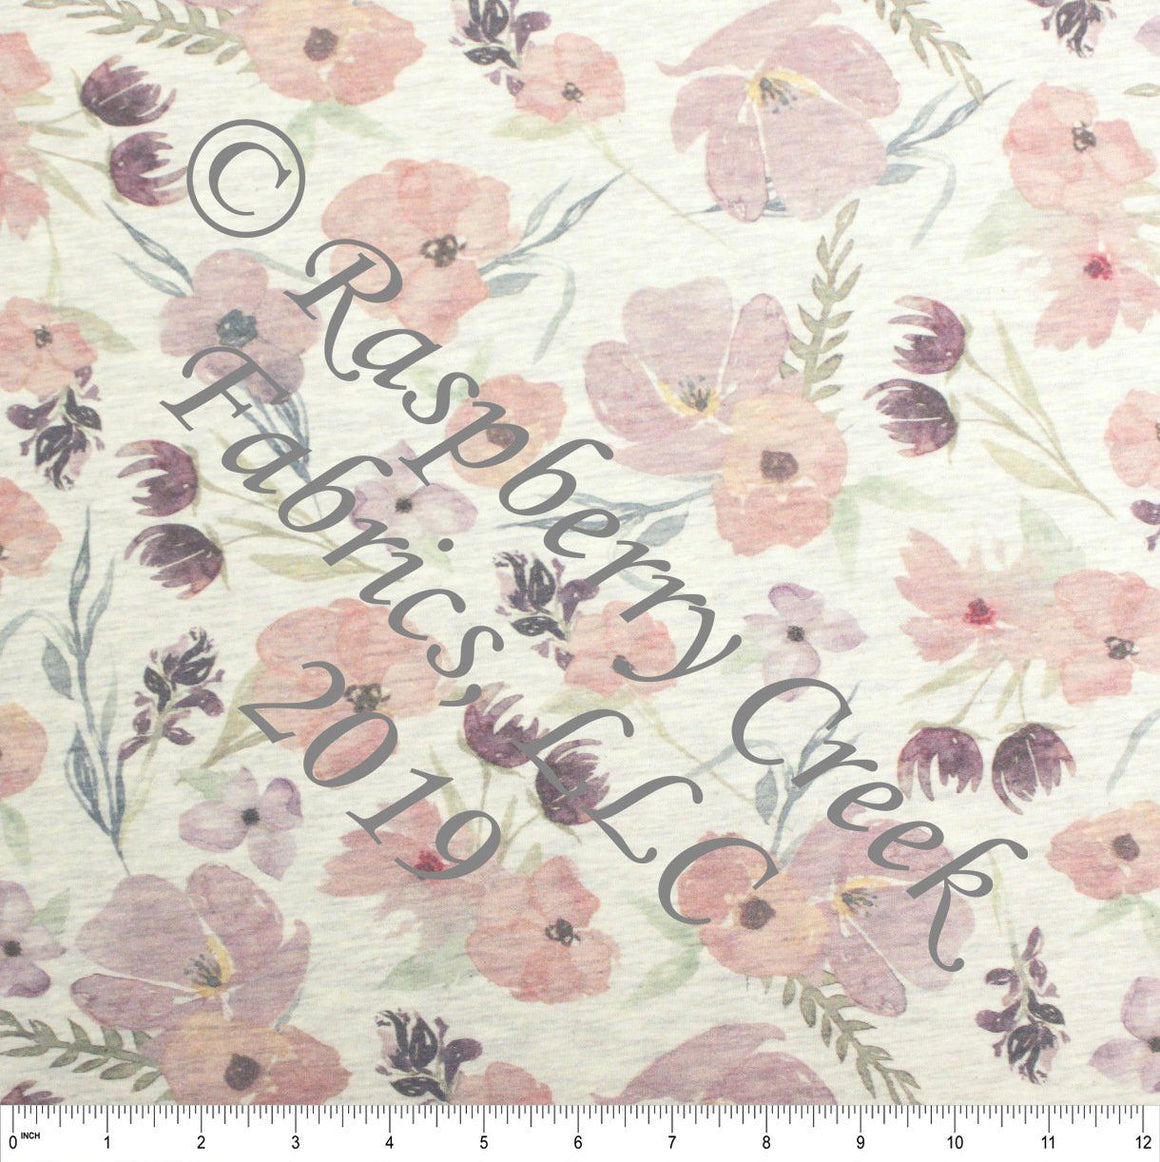 Eggplant Mauve Sage and Lilac Pale Faded Look Floral on Oatmeal 4 Way Stretch French Terry Knit Fabric, PRE-ORDER - Raspberry Creek Fabrics